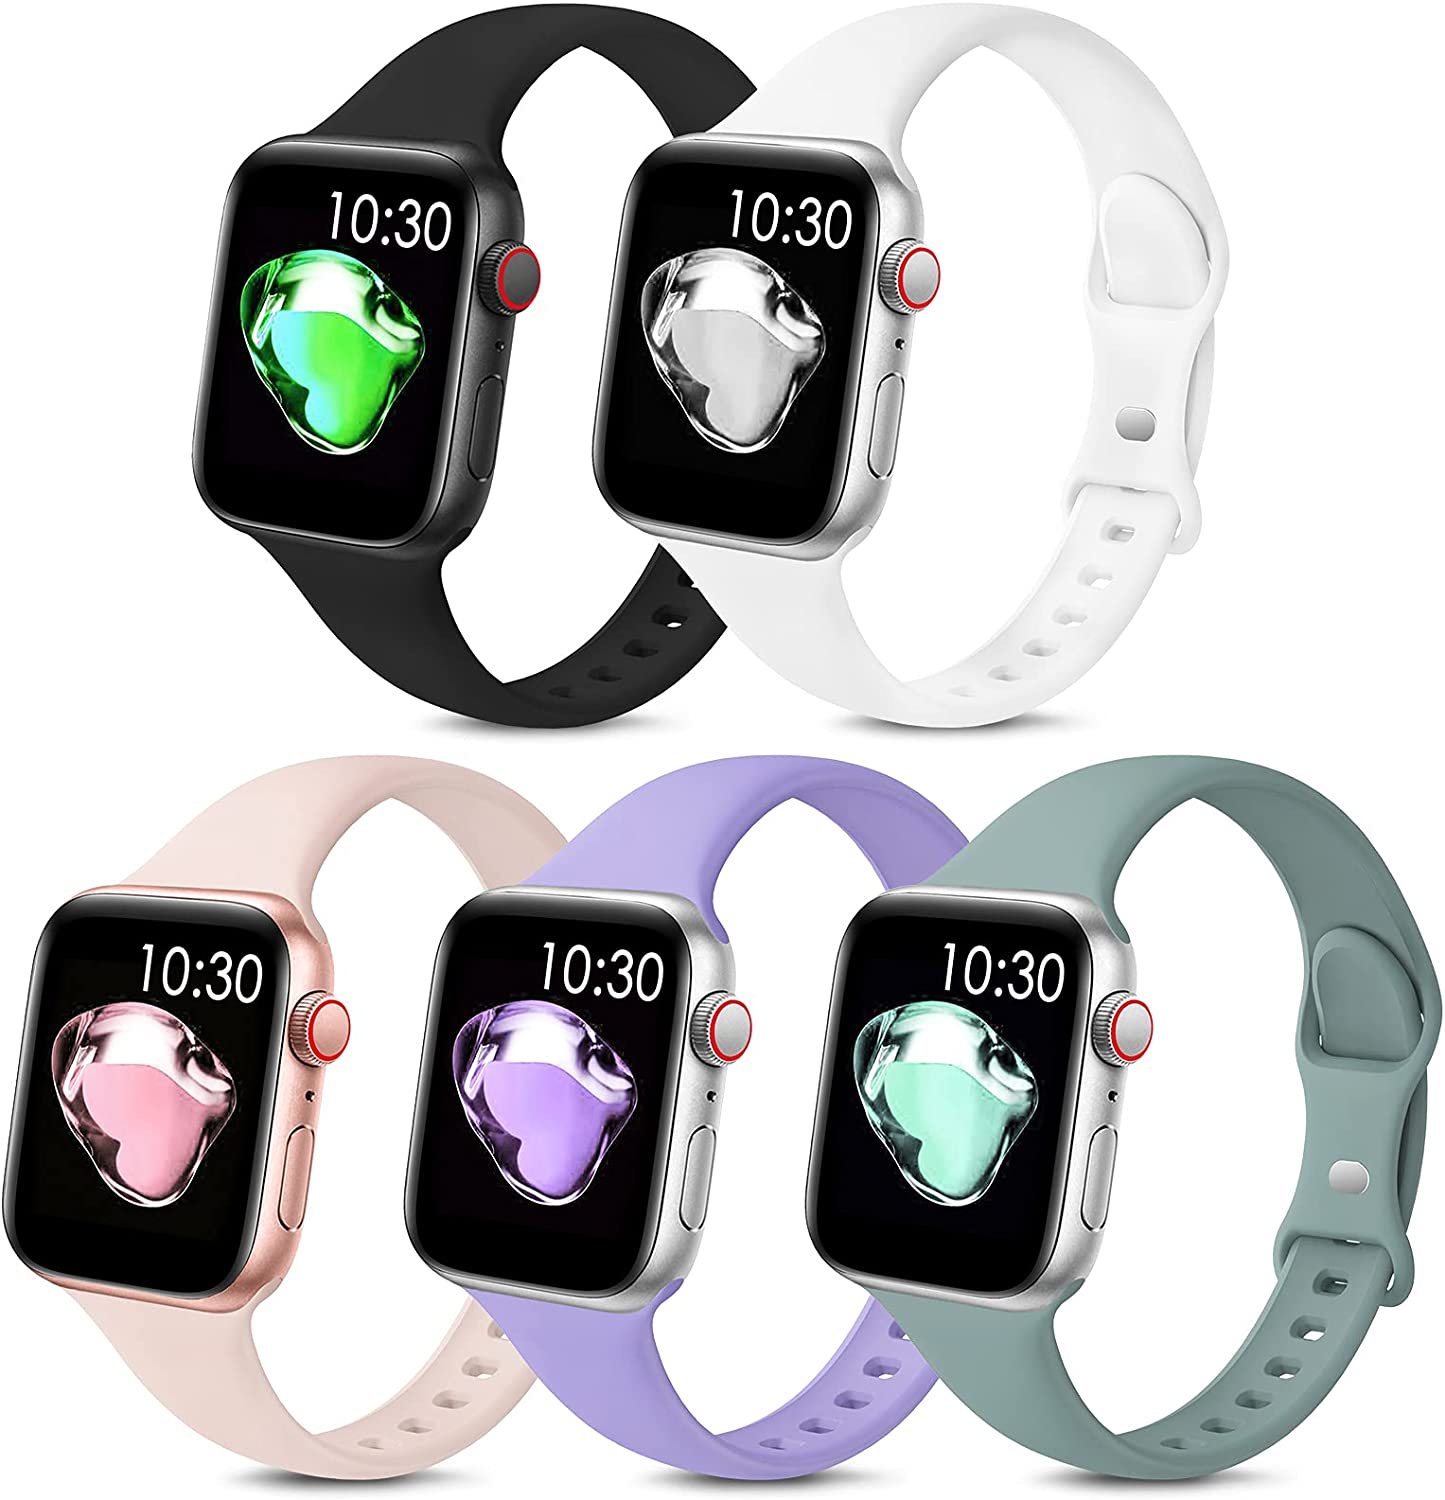 5 Pack Sport Slim Bands Compatible with Apple Watch Bands 38mm 40mm 42mm 44mm Women Men,Thin Silicone Soft Replacement Strap Wristband for iWatch Series 6 5 4 3 2 1 SE(38MM/40MM,Color1)